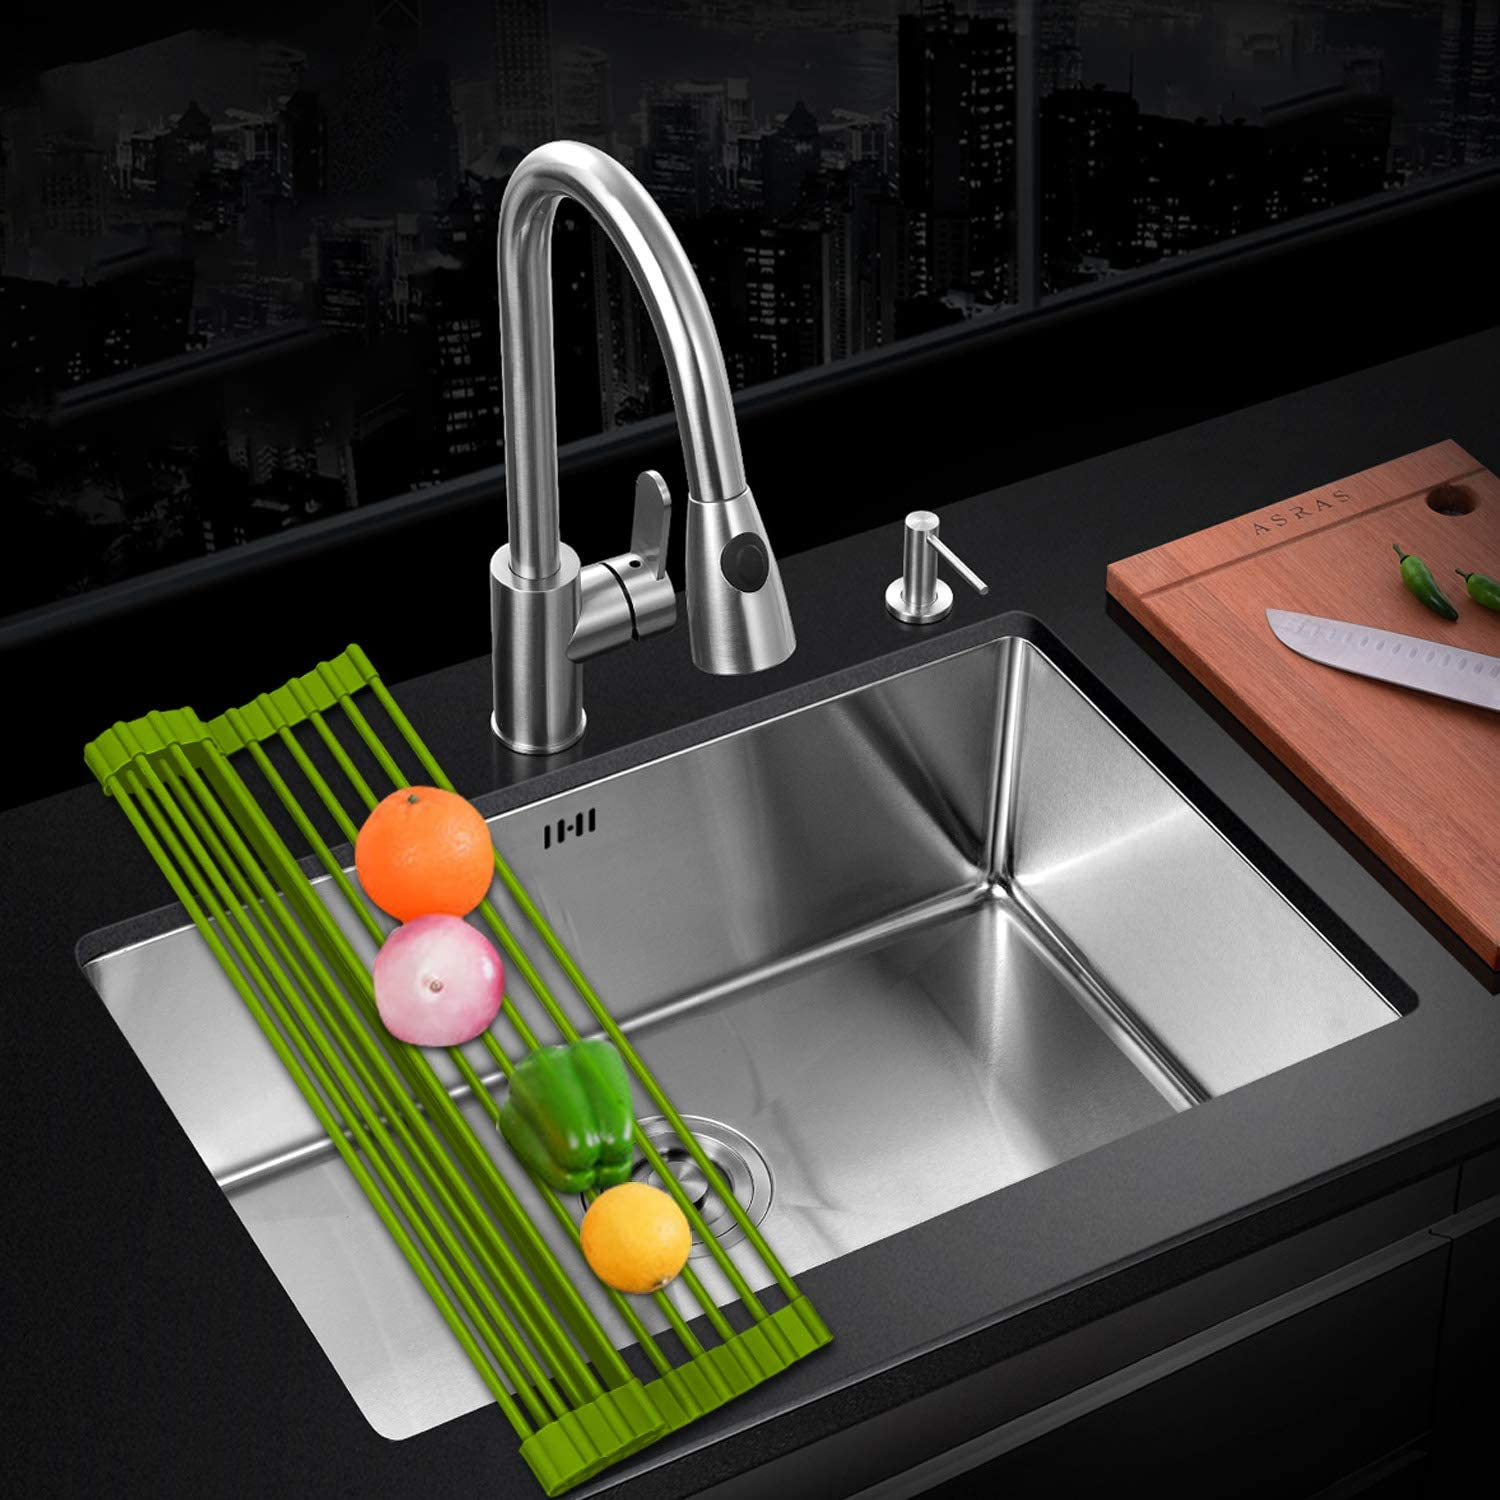 LEASEN Over The Sink Silicone Roll-up Omaha Mall Rack New Shipping Free Shipping Dish Kitchen Drying D